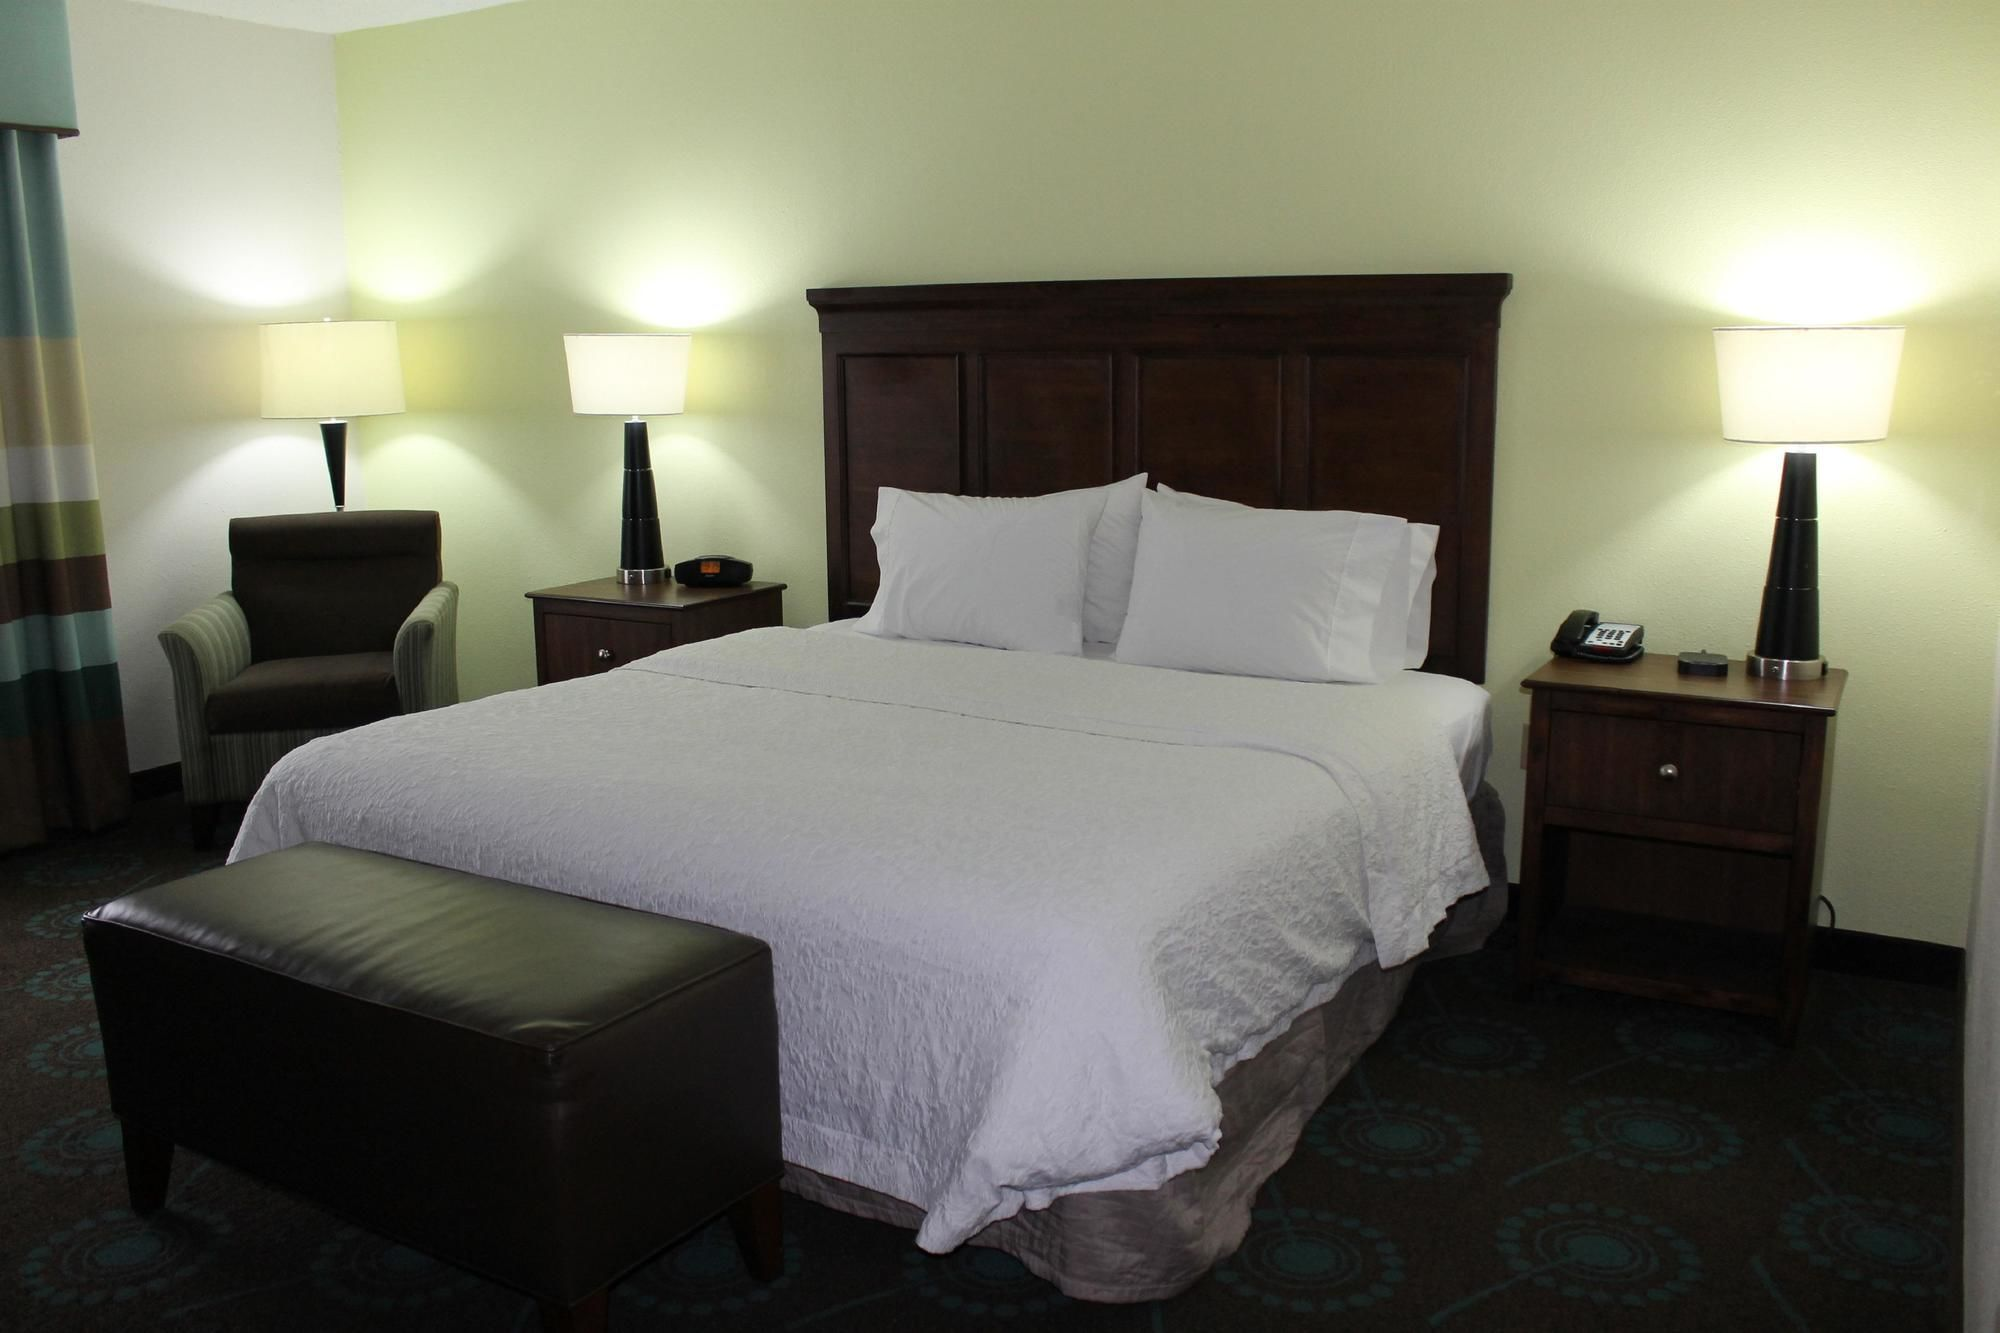 Hampton Inn Dahlgren in King George, VA